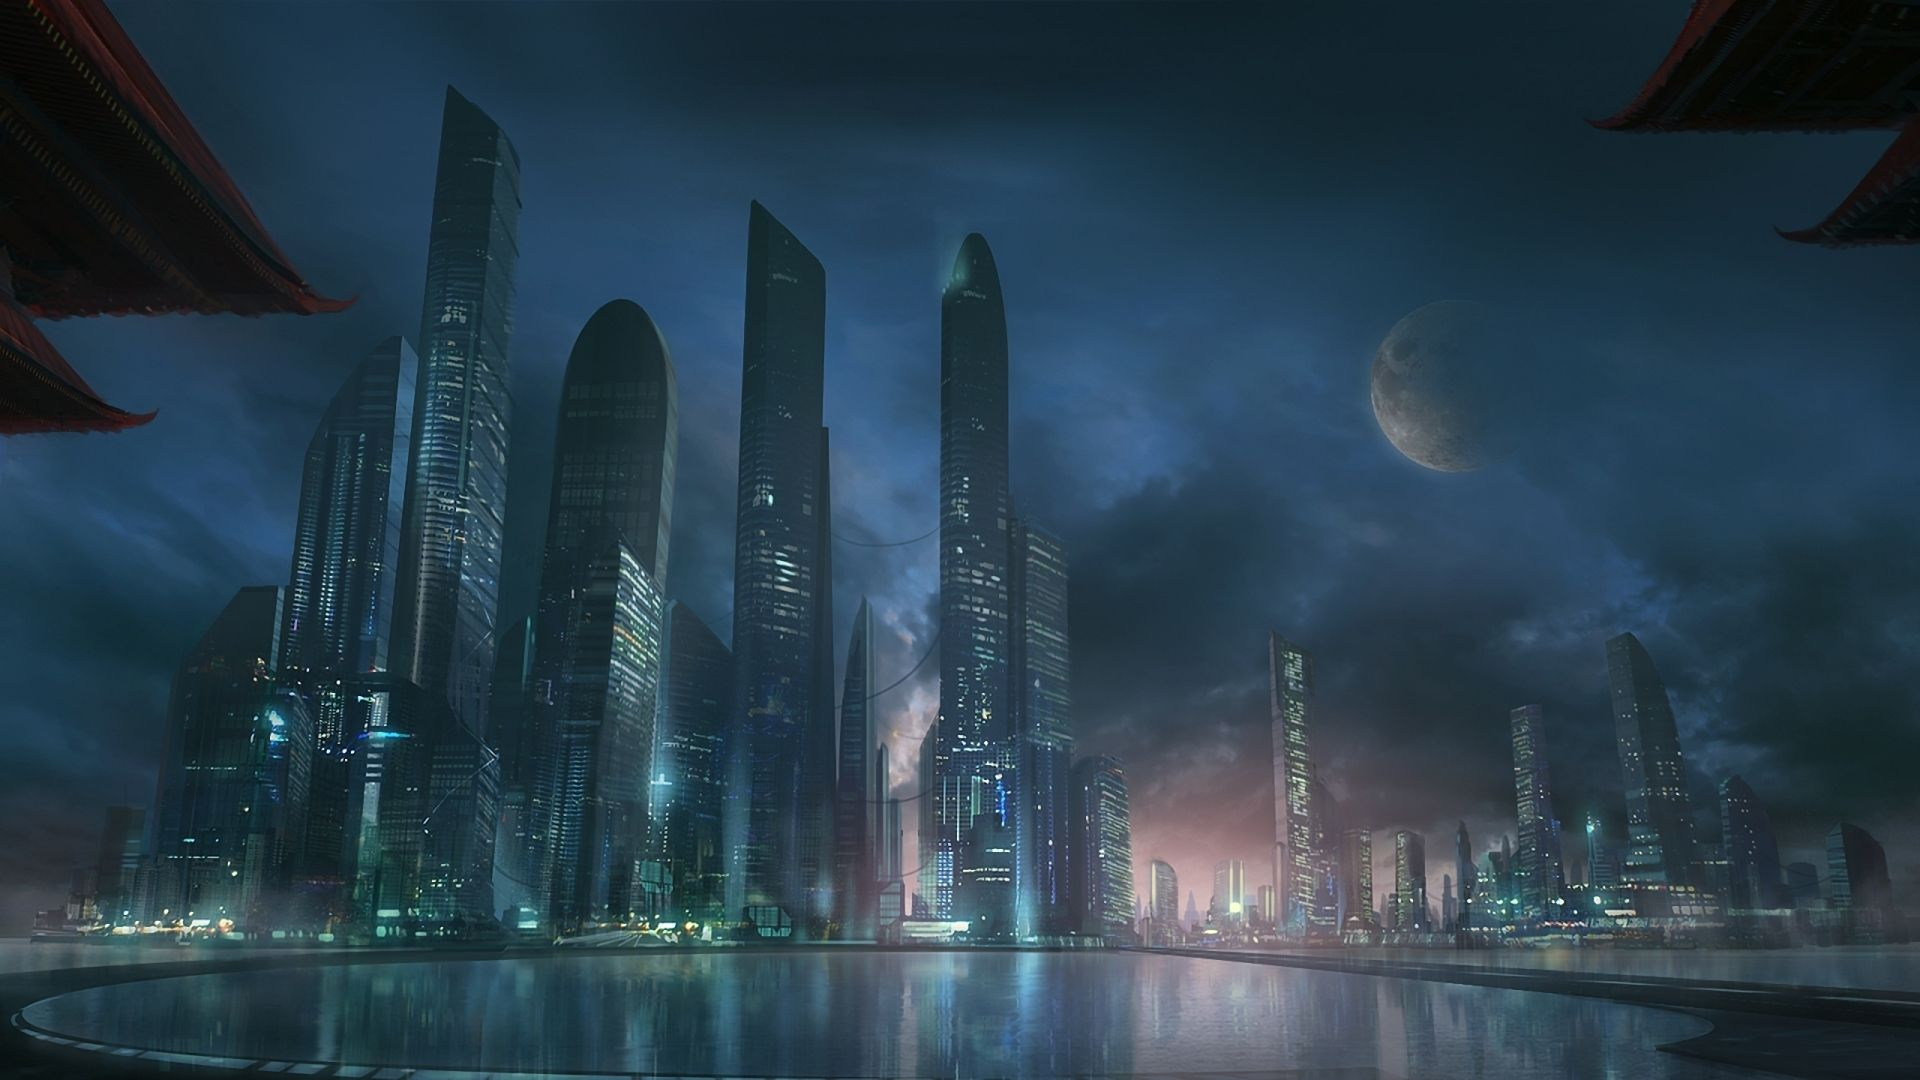 Sci Fi City Cyberpunk CityFuturistic TechnologyFuturistic ArchitectureNeo TokyoFuture CityHd WallpaperWallpapersSkyline